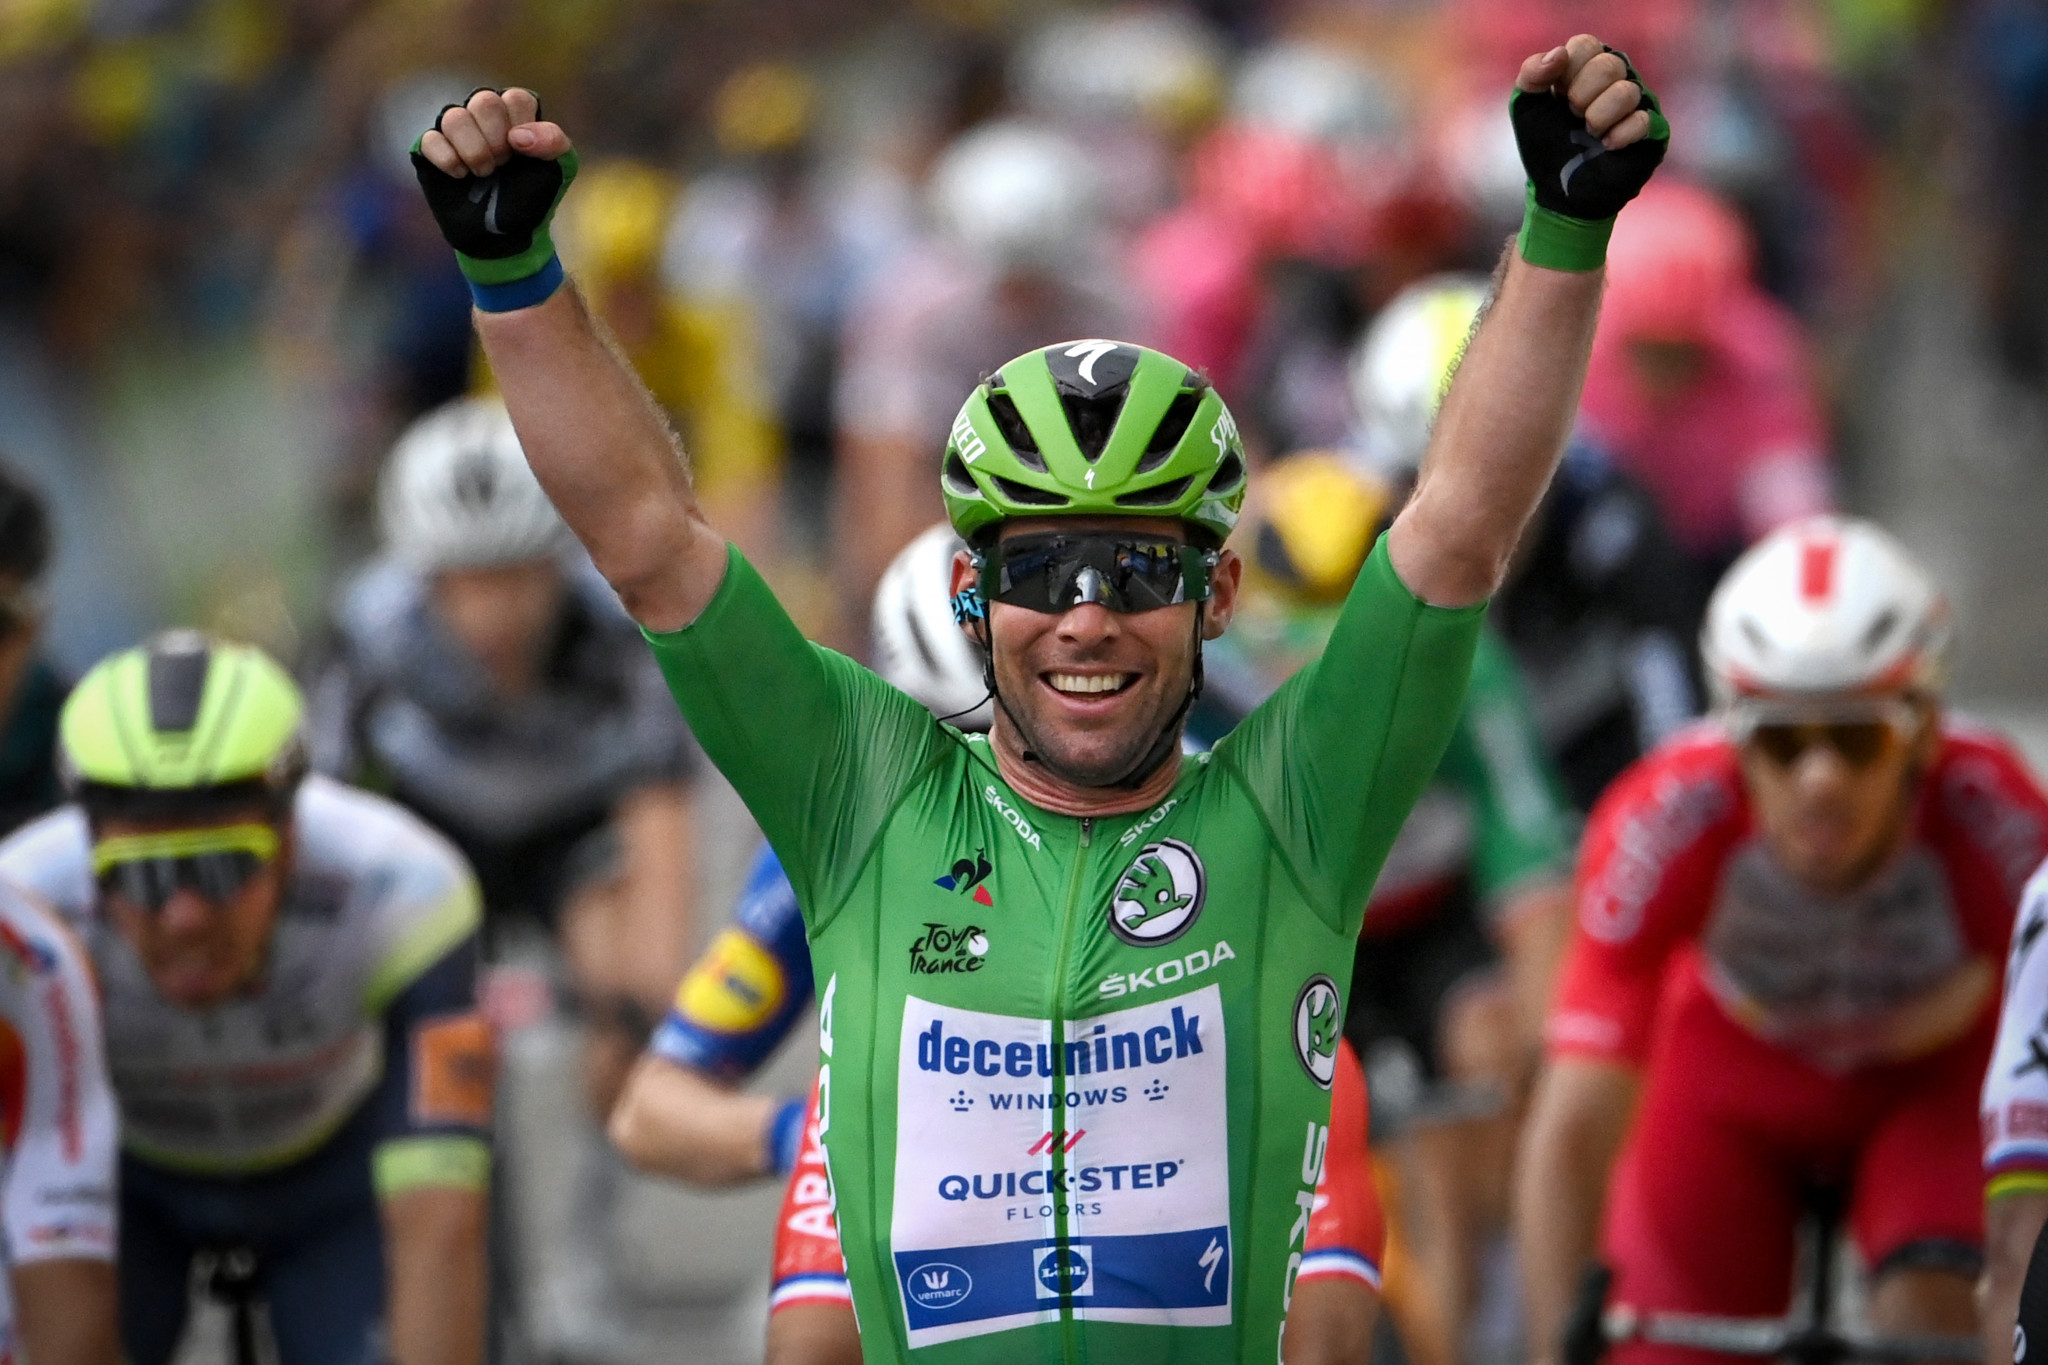 Cavendish nears Merckx's all-time Tour de France record after claiming 33rd win